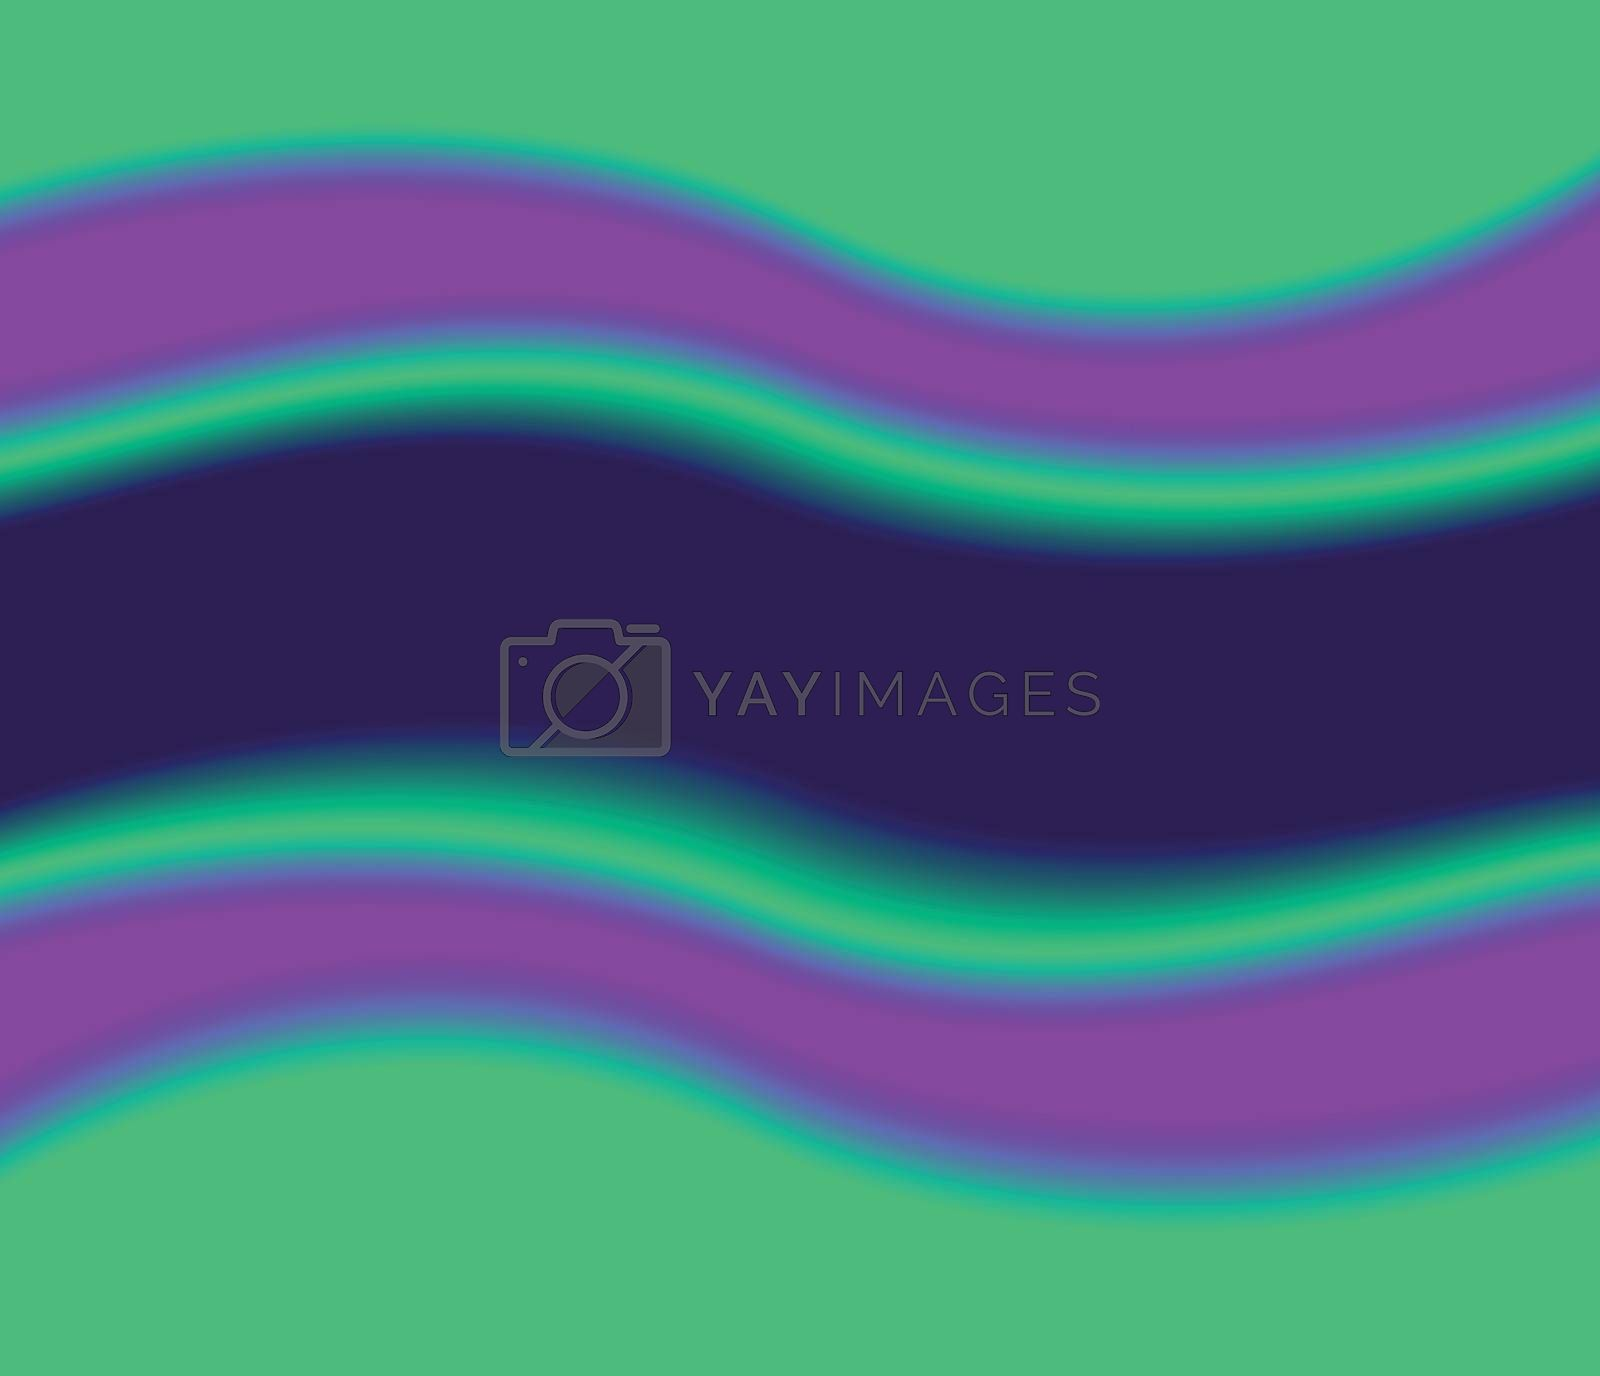 Colorful background. Green pink purple and blue color waves framme border. Luxury style abstract vector backdrop or cover layout.